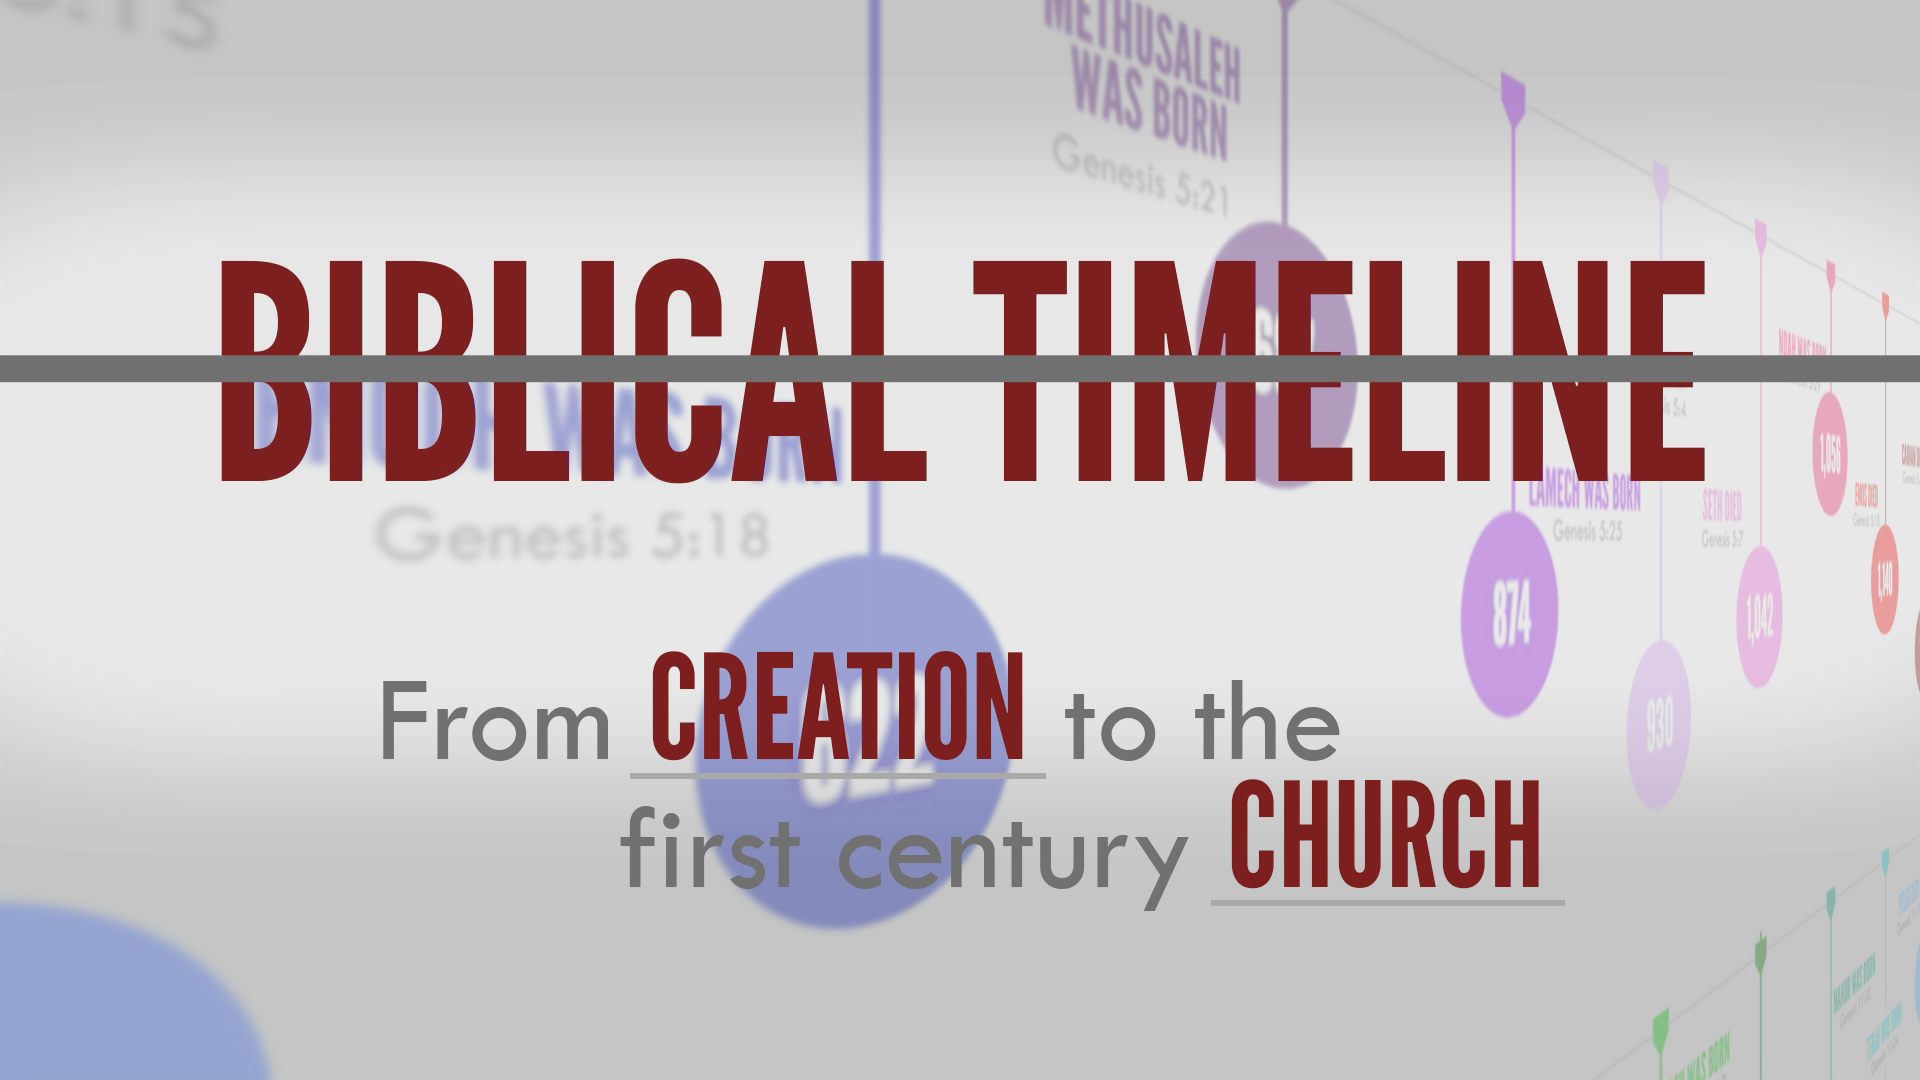 Biblical Timeline: From Creation to the Church